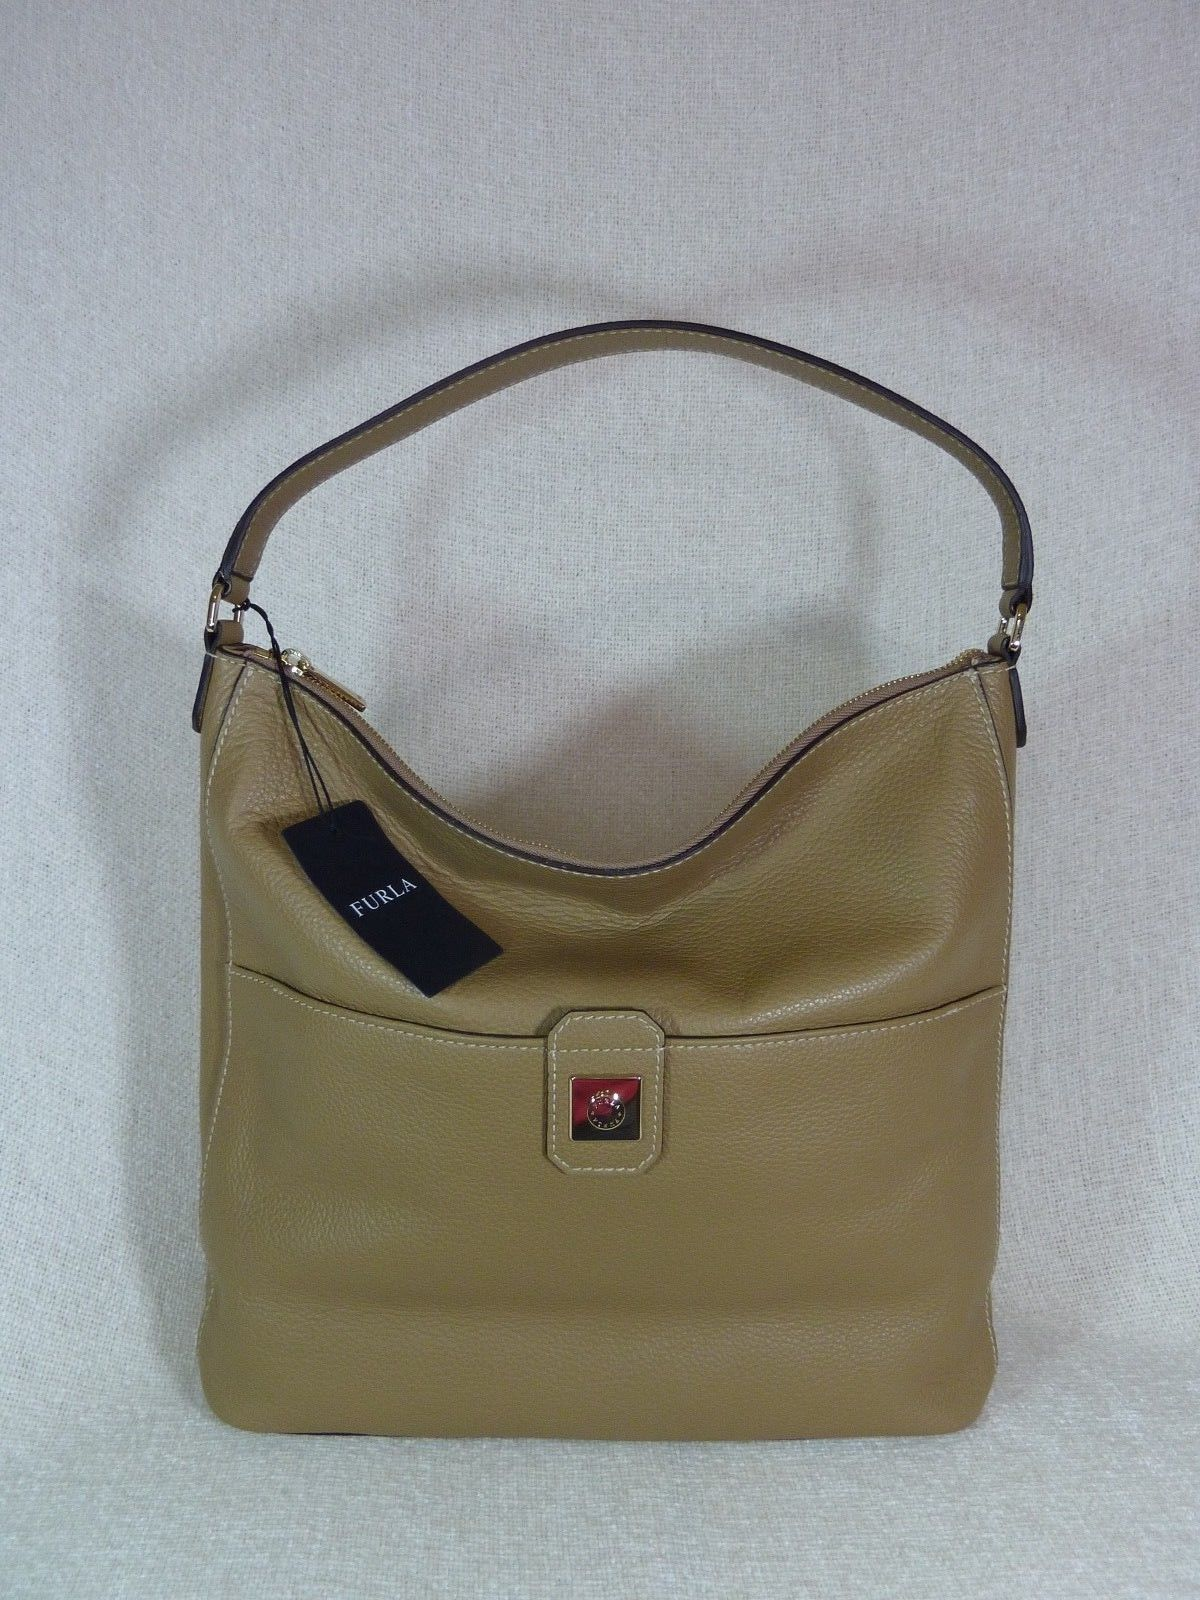 NWT Furla Cappuccino Pebbled Leather Jo Vertical Tote Bag image 5